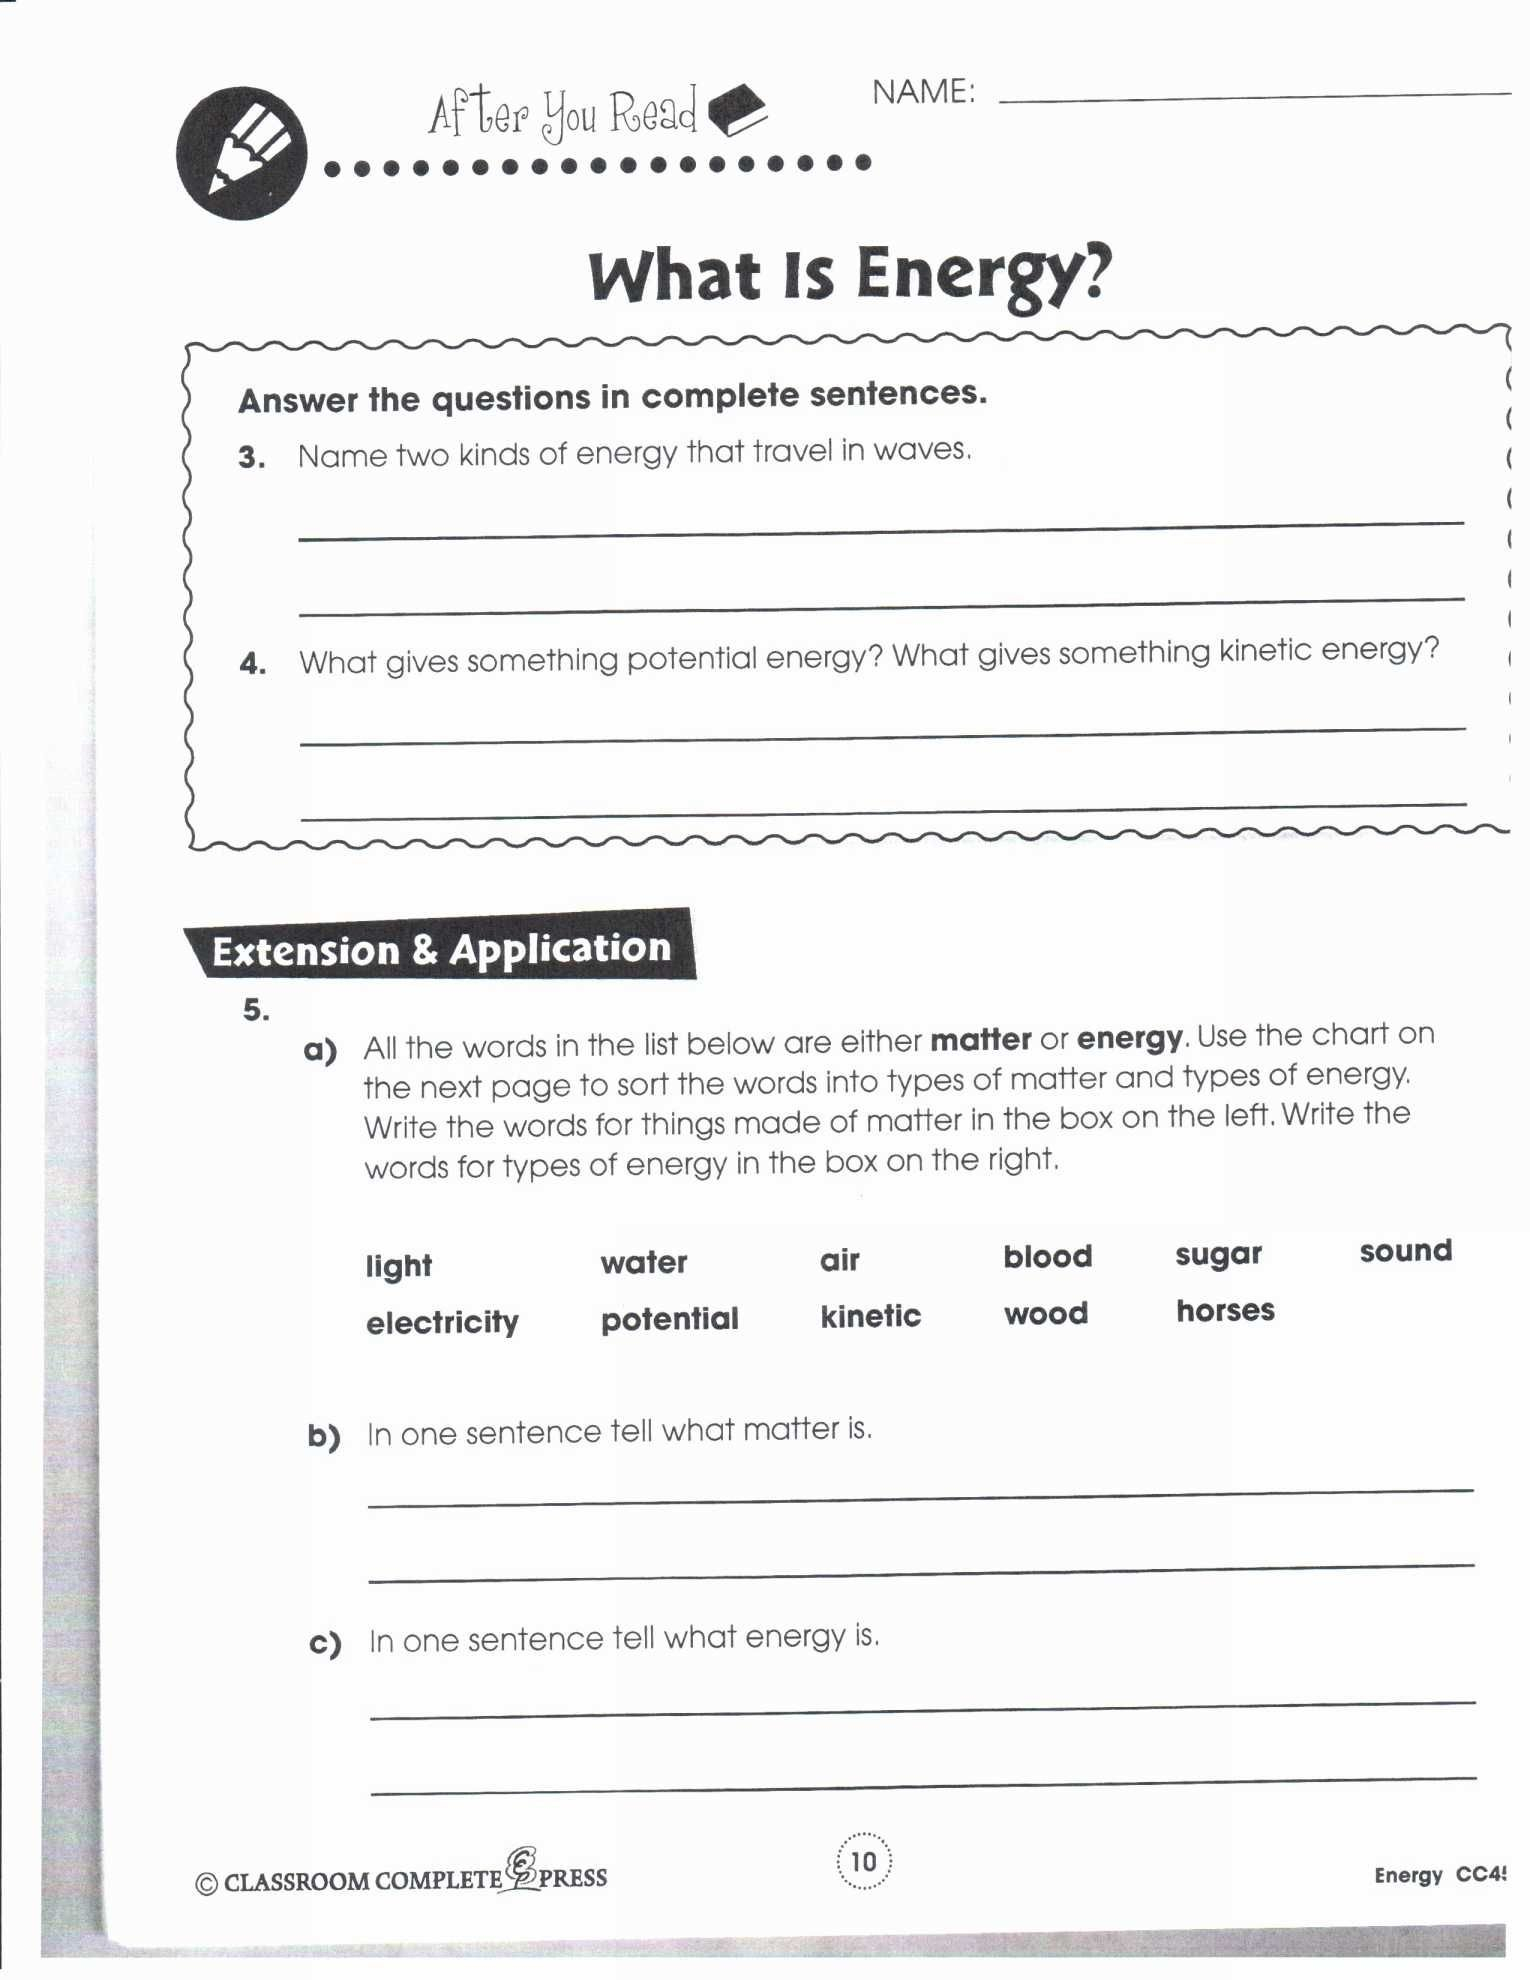 Electrical Power And Energy Worksheet  Briefencounters With Electrical Power And Energy Worksheet